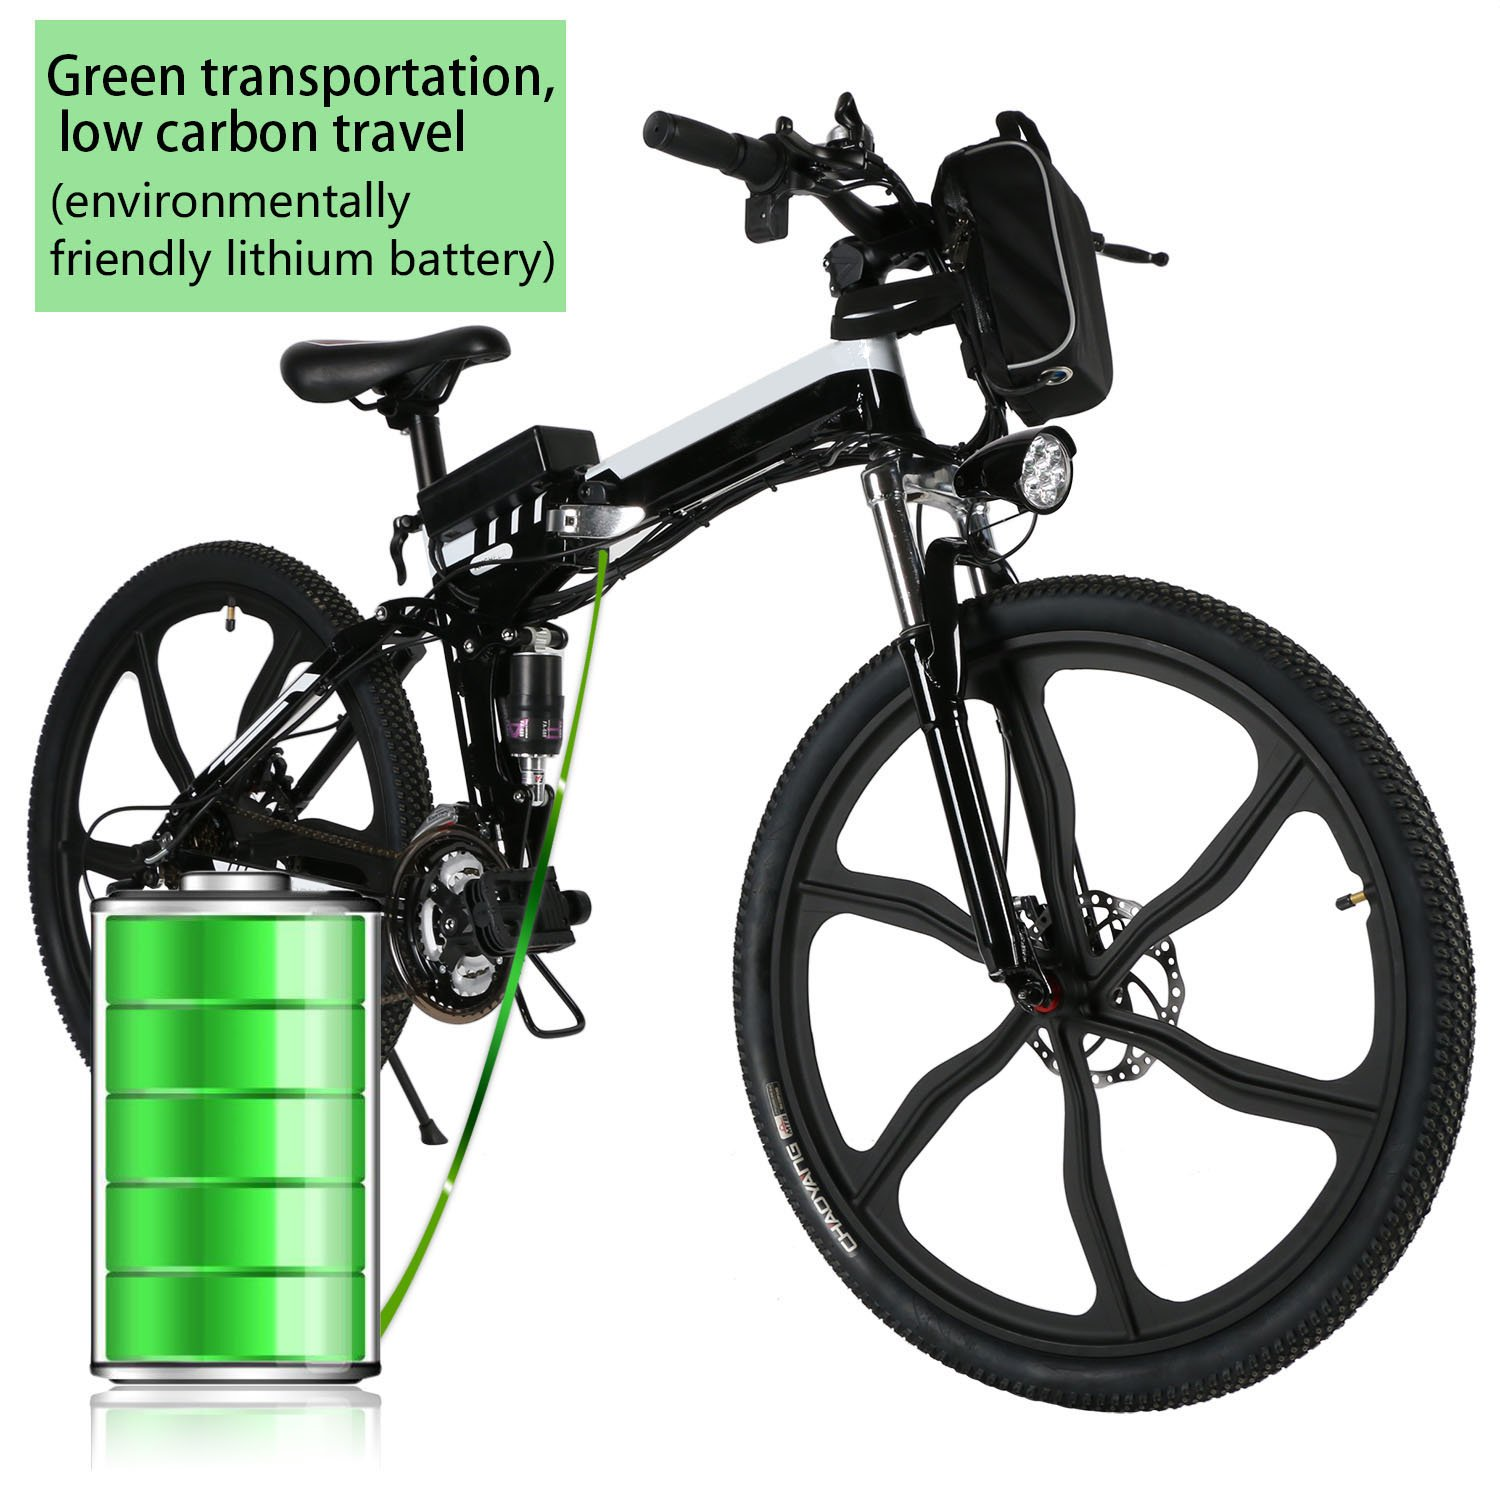 b880cf152eb Tomasar Power Electric Bike with Lithium-Ion Battery, 26 inch Wheel  Cyclocross Bike (